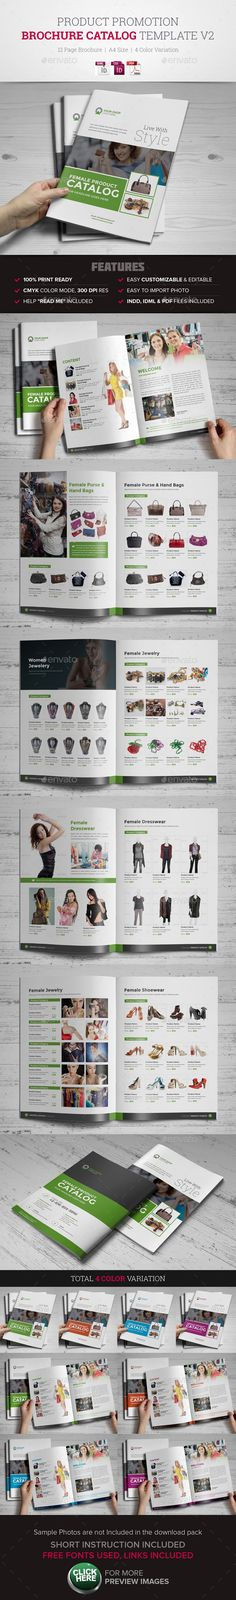 Product Promotion Catalog InDesign Template #design #brochure Download: http://graphicriver.net/item/product-promotion-catalog-indesign-template-v2/11408161?ref=ksioks